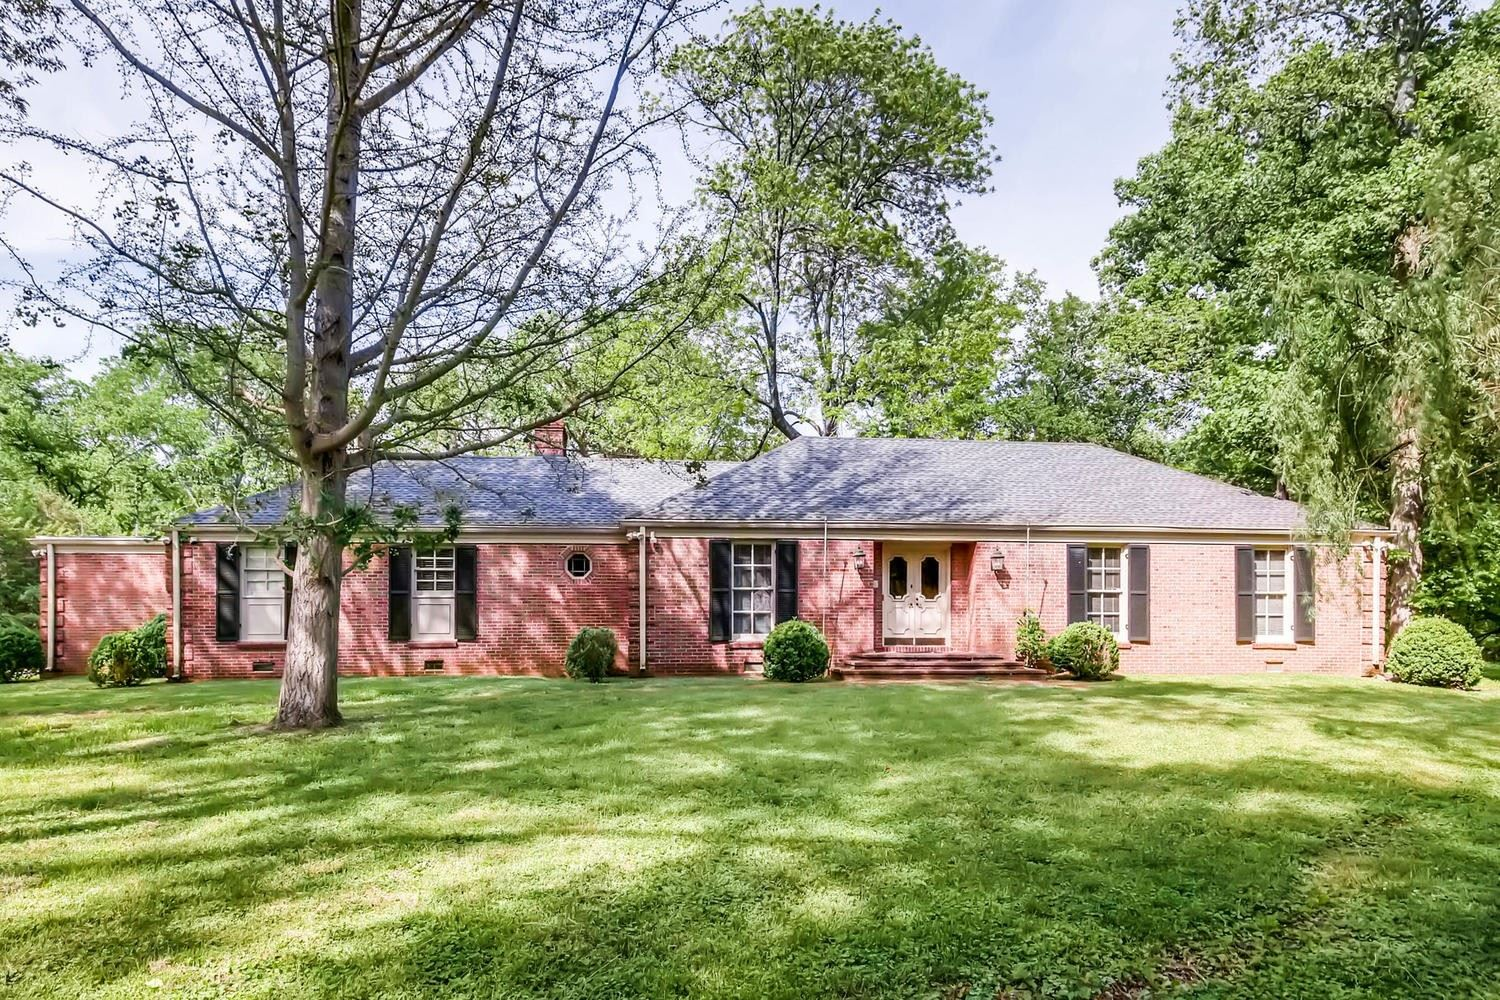 Photo of 4414 Forsythe Pl, Nashville, TN 37205 (MLS # 2105909)